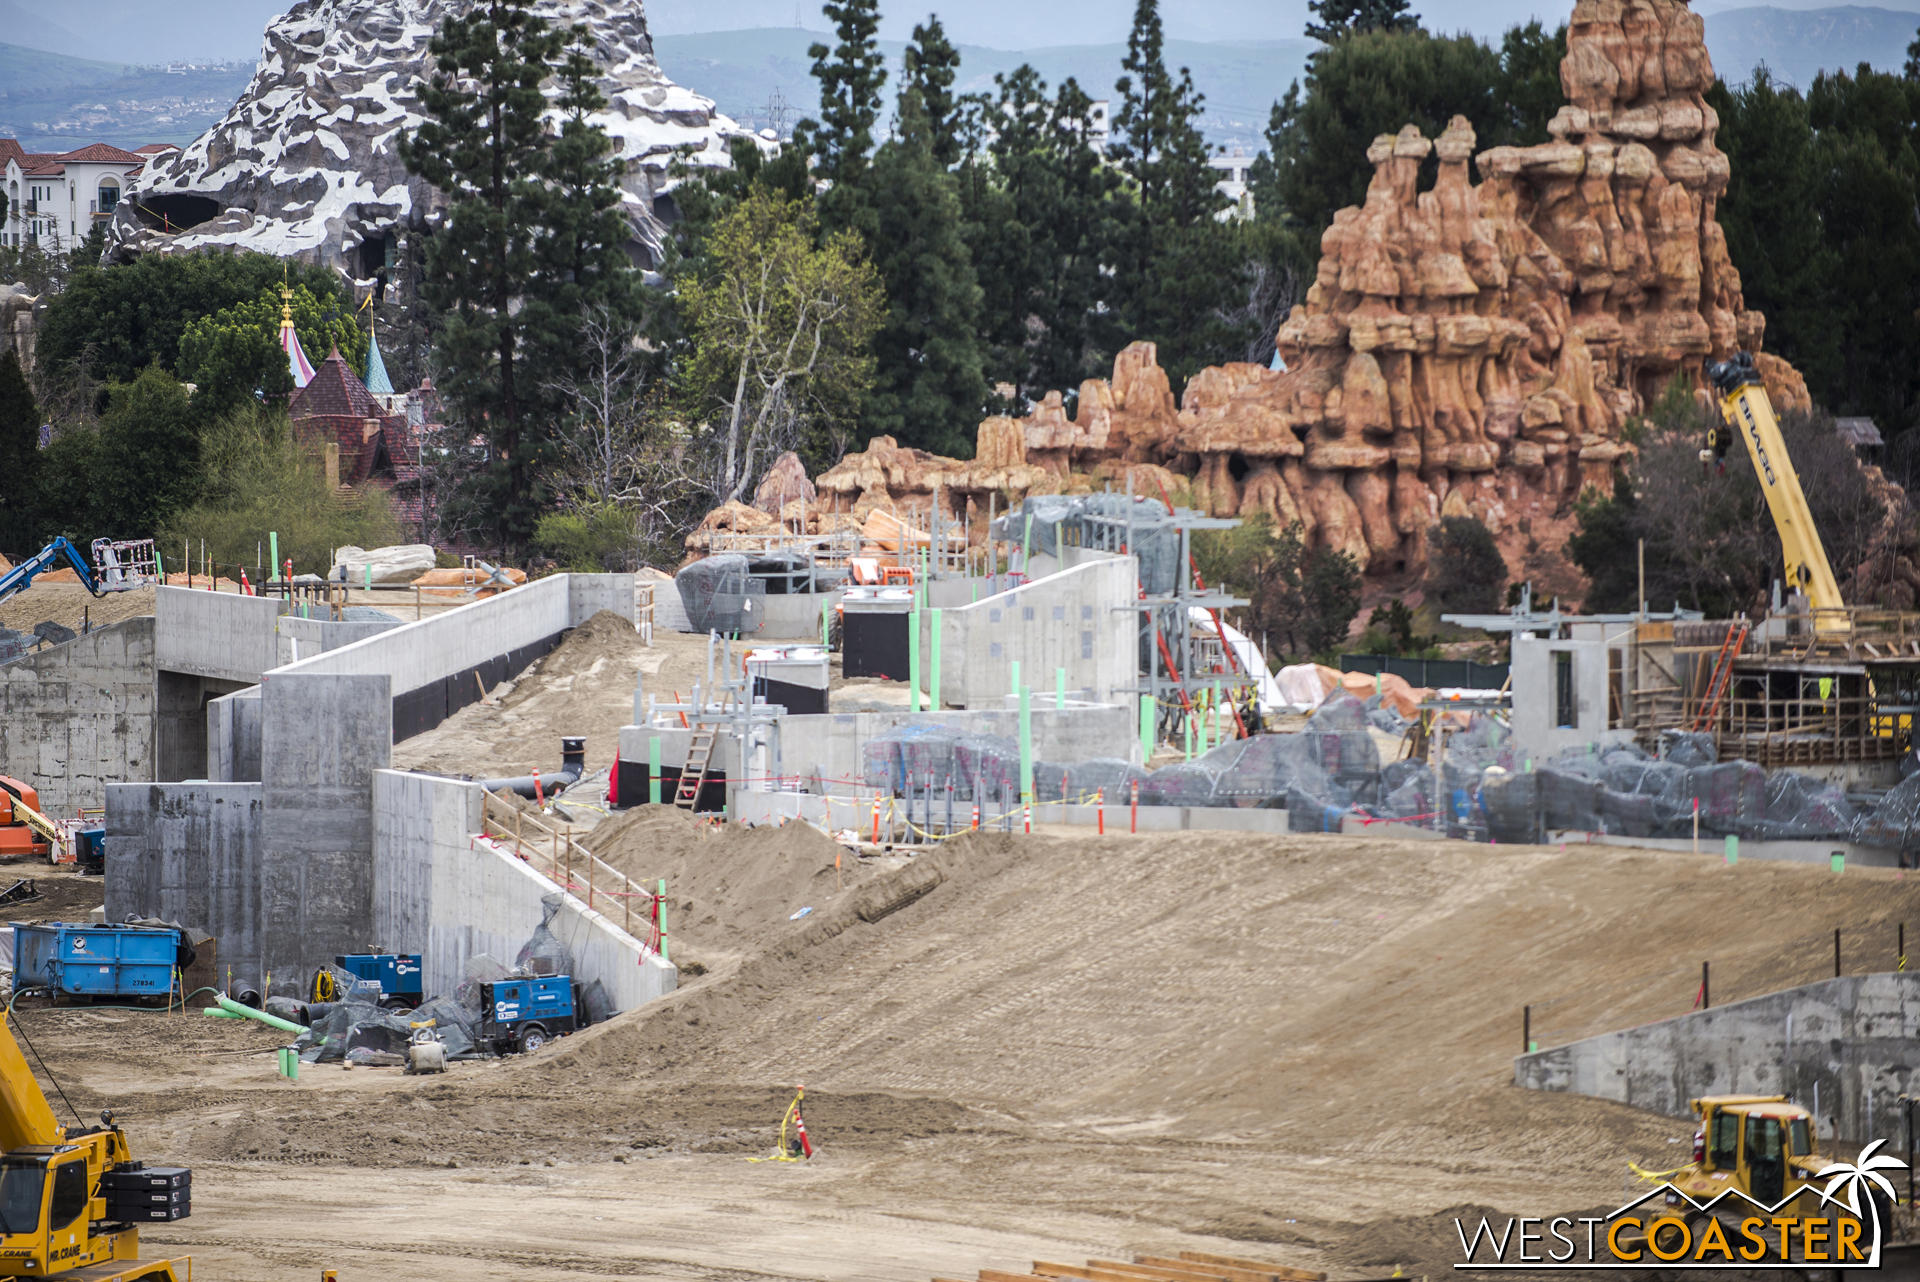 And there seems to be something architectural going up behind the rockwork on the right of this photo too.